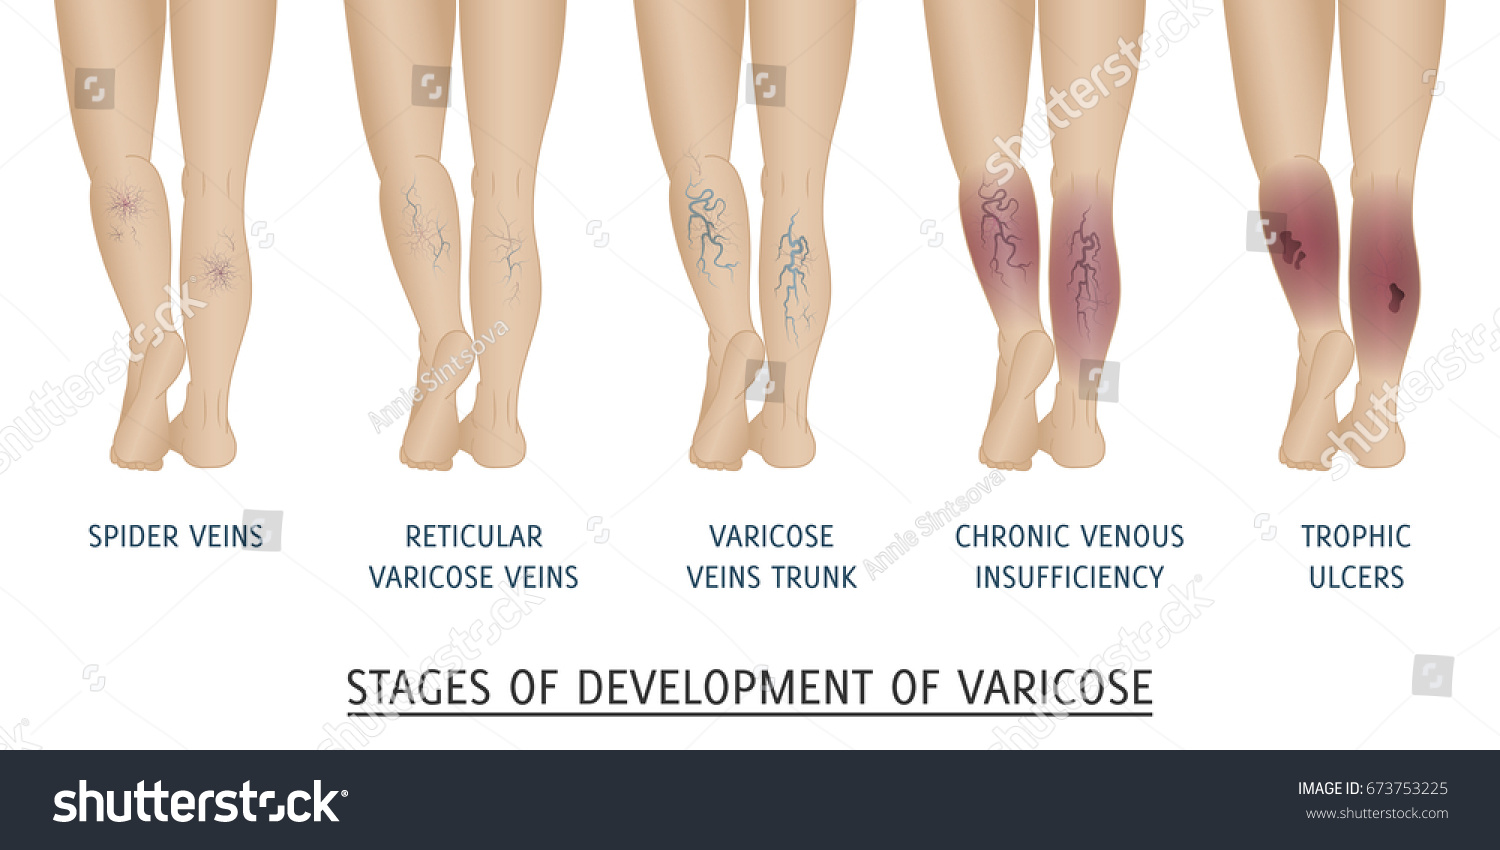 hight resolution of types of varicose veins in women stages of development of varicose veins vector illustration